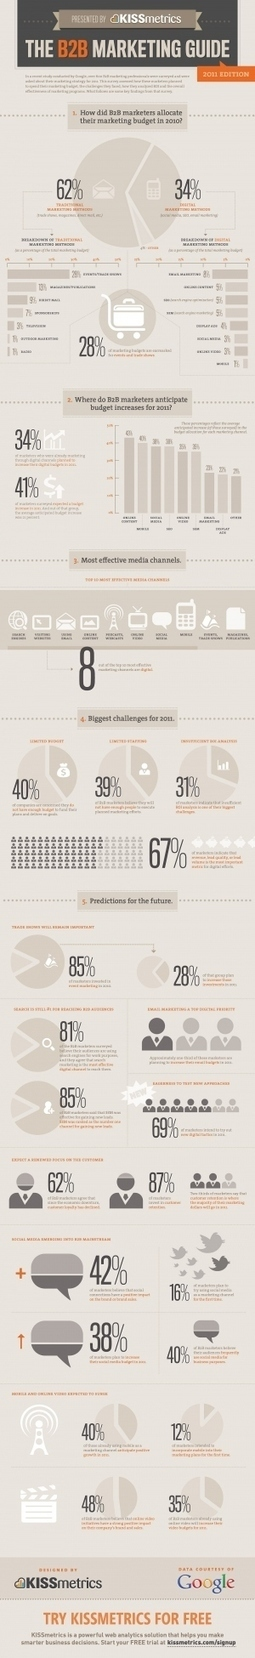 Infography about b2b marketing | Marketing & Advertising | Scoop.it